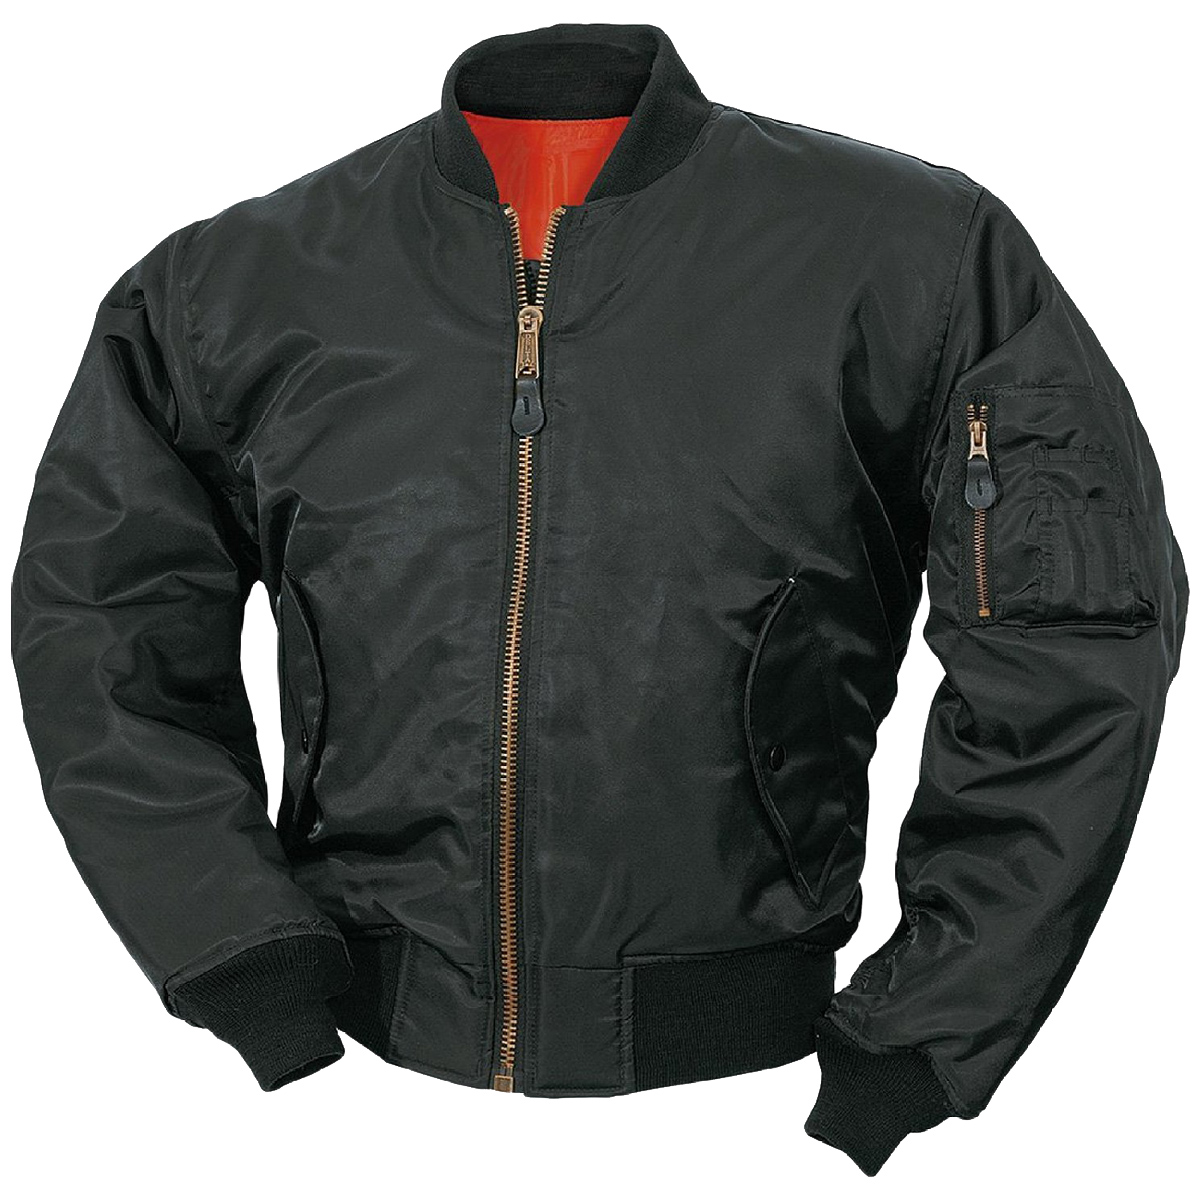 A Brief History of The Bomber Jacket. On May 9, a leather flight jacket known as military specification number was adopted as standard issue by the US Army Air Forces. Named the Type A-2, it was an American military flight jacket designed for the forces' pilots.